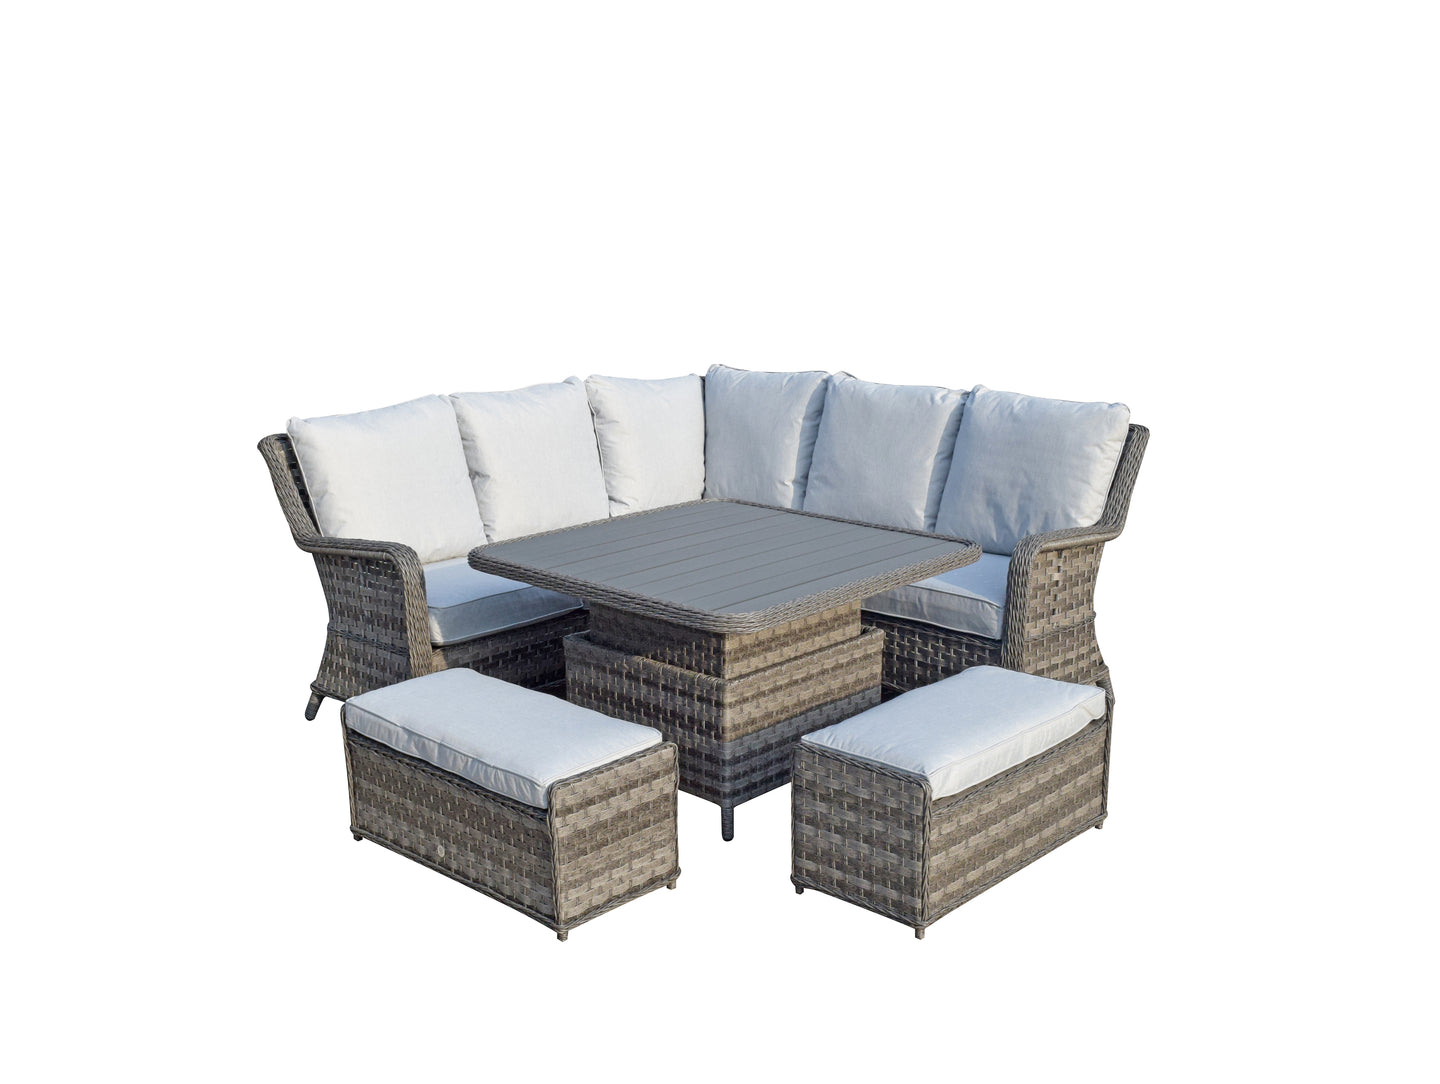 Paris Rattan- Corner Sofa- Adjustable Poly Wood Top- Grey